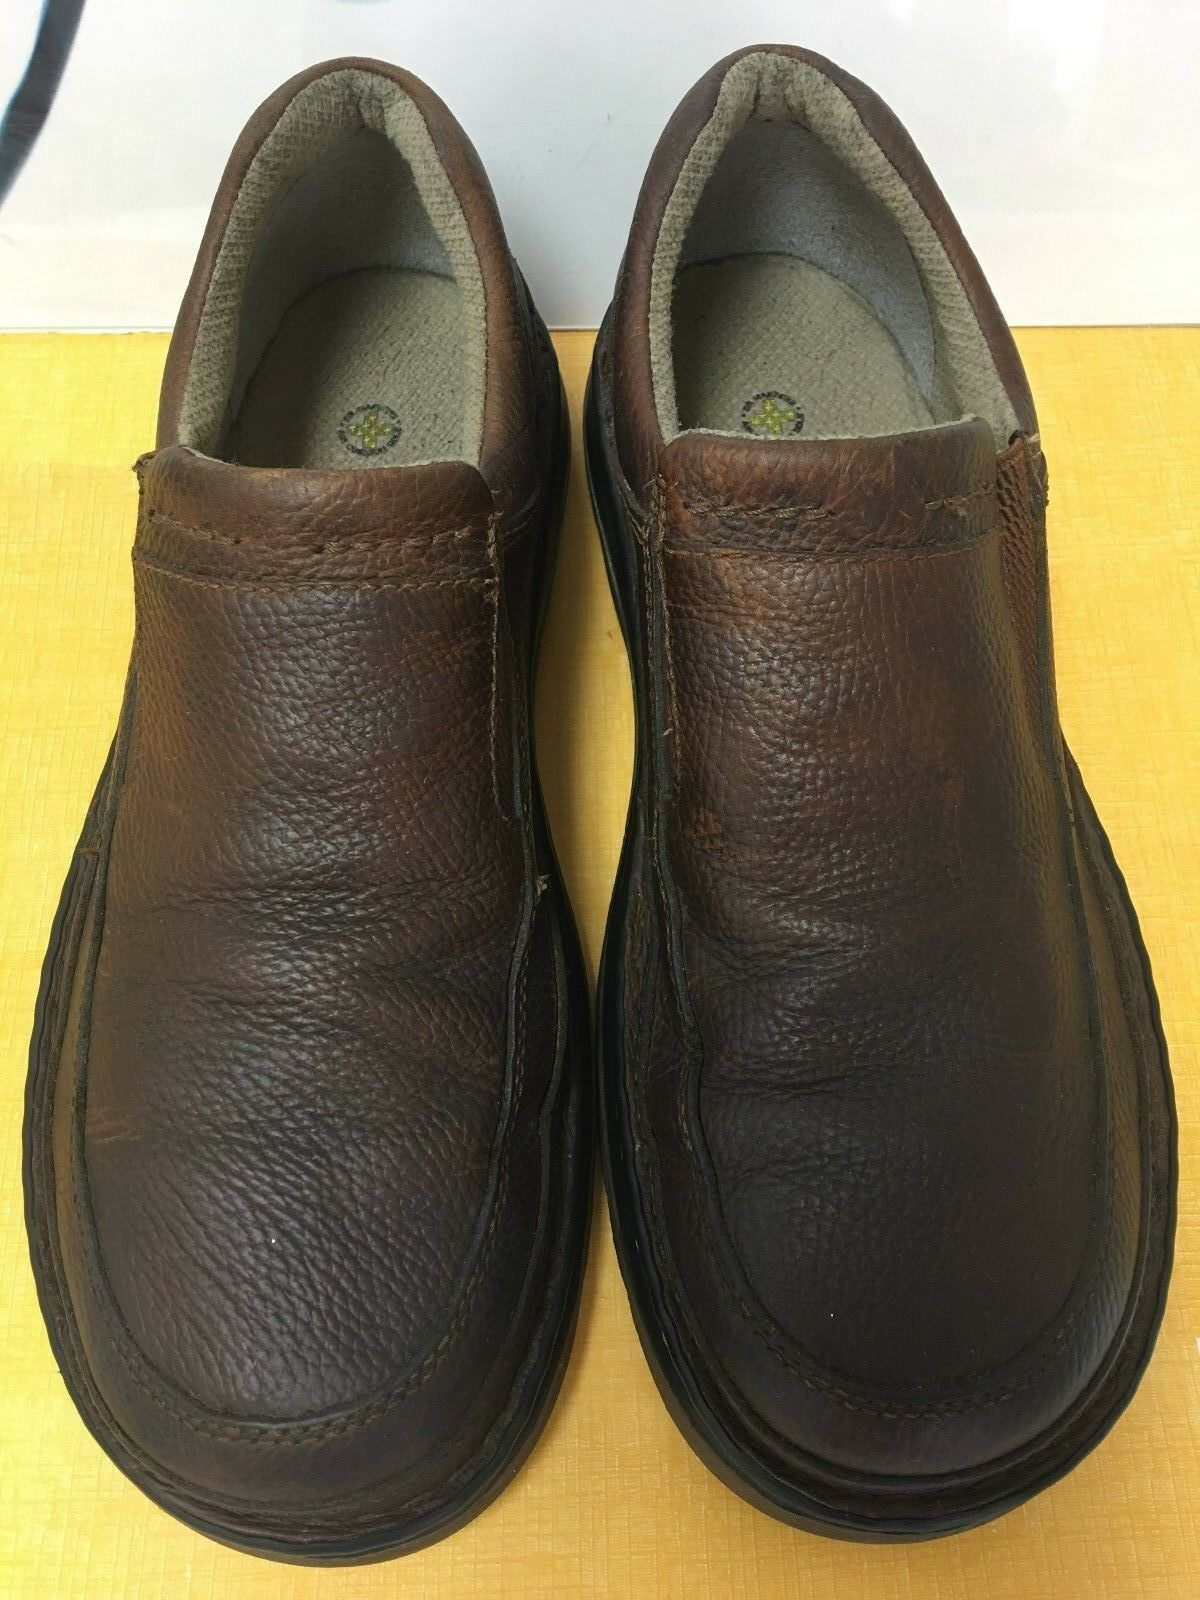 DR MARTENS Brown Leather,Air Cushion shoes UK10, USM11